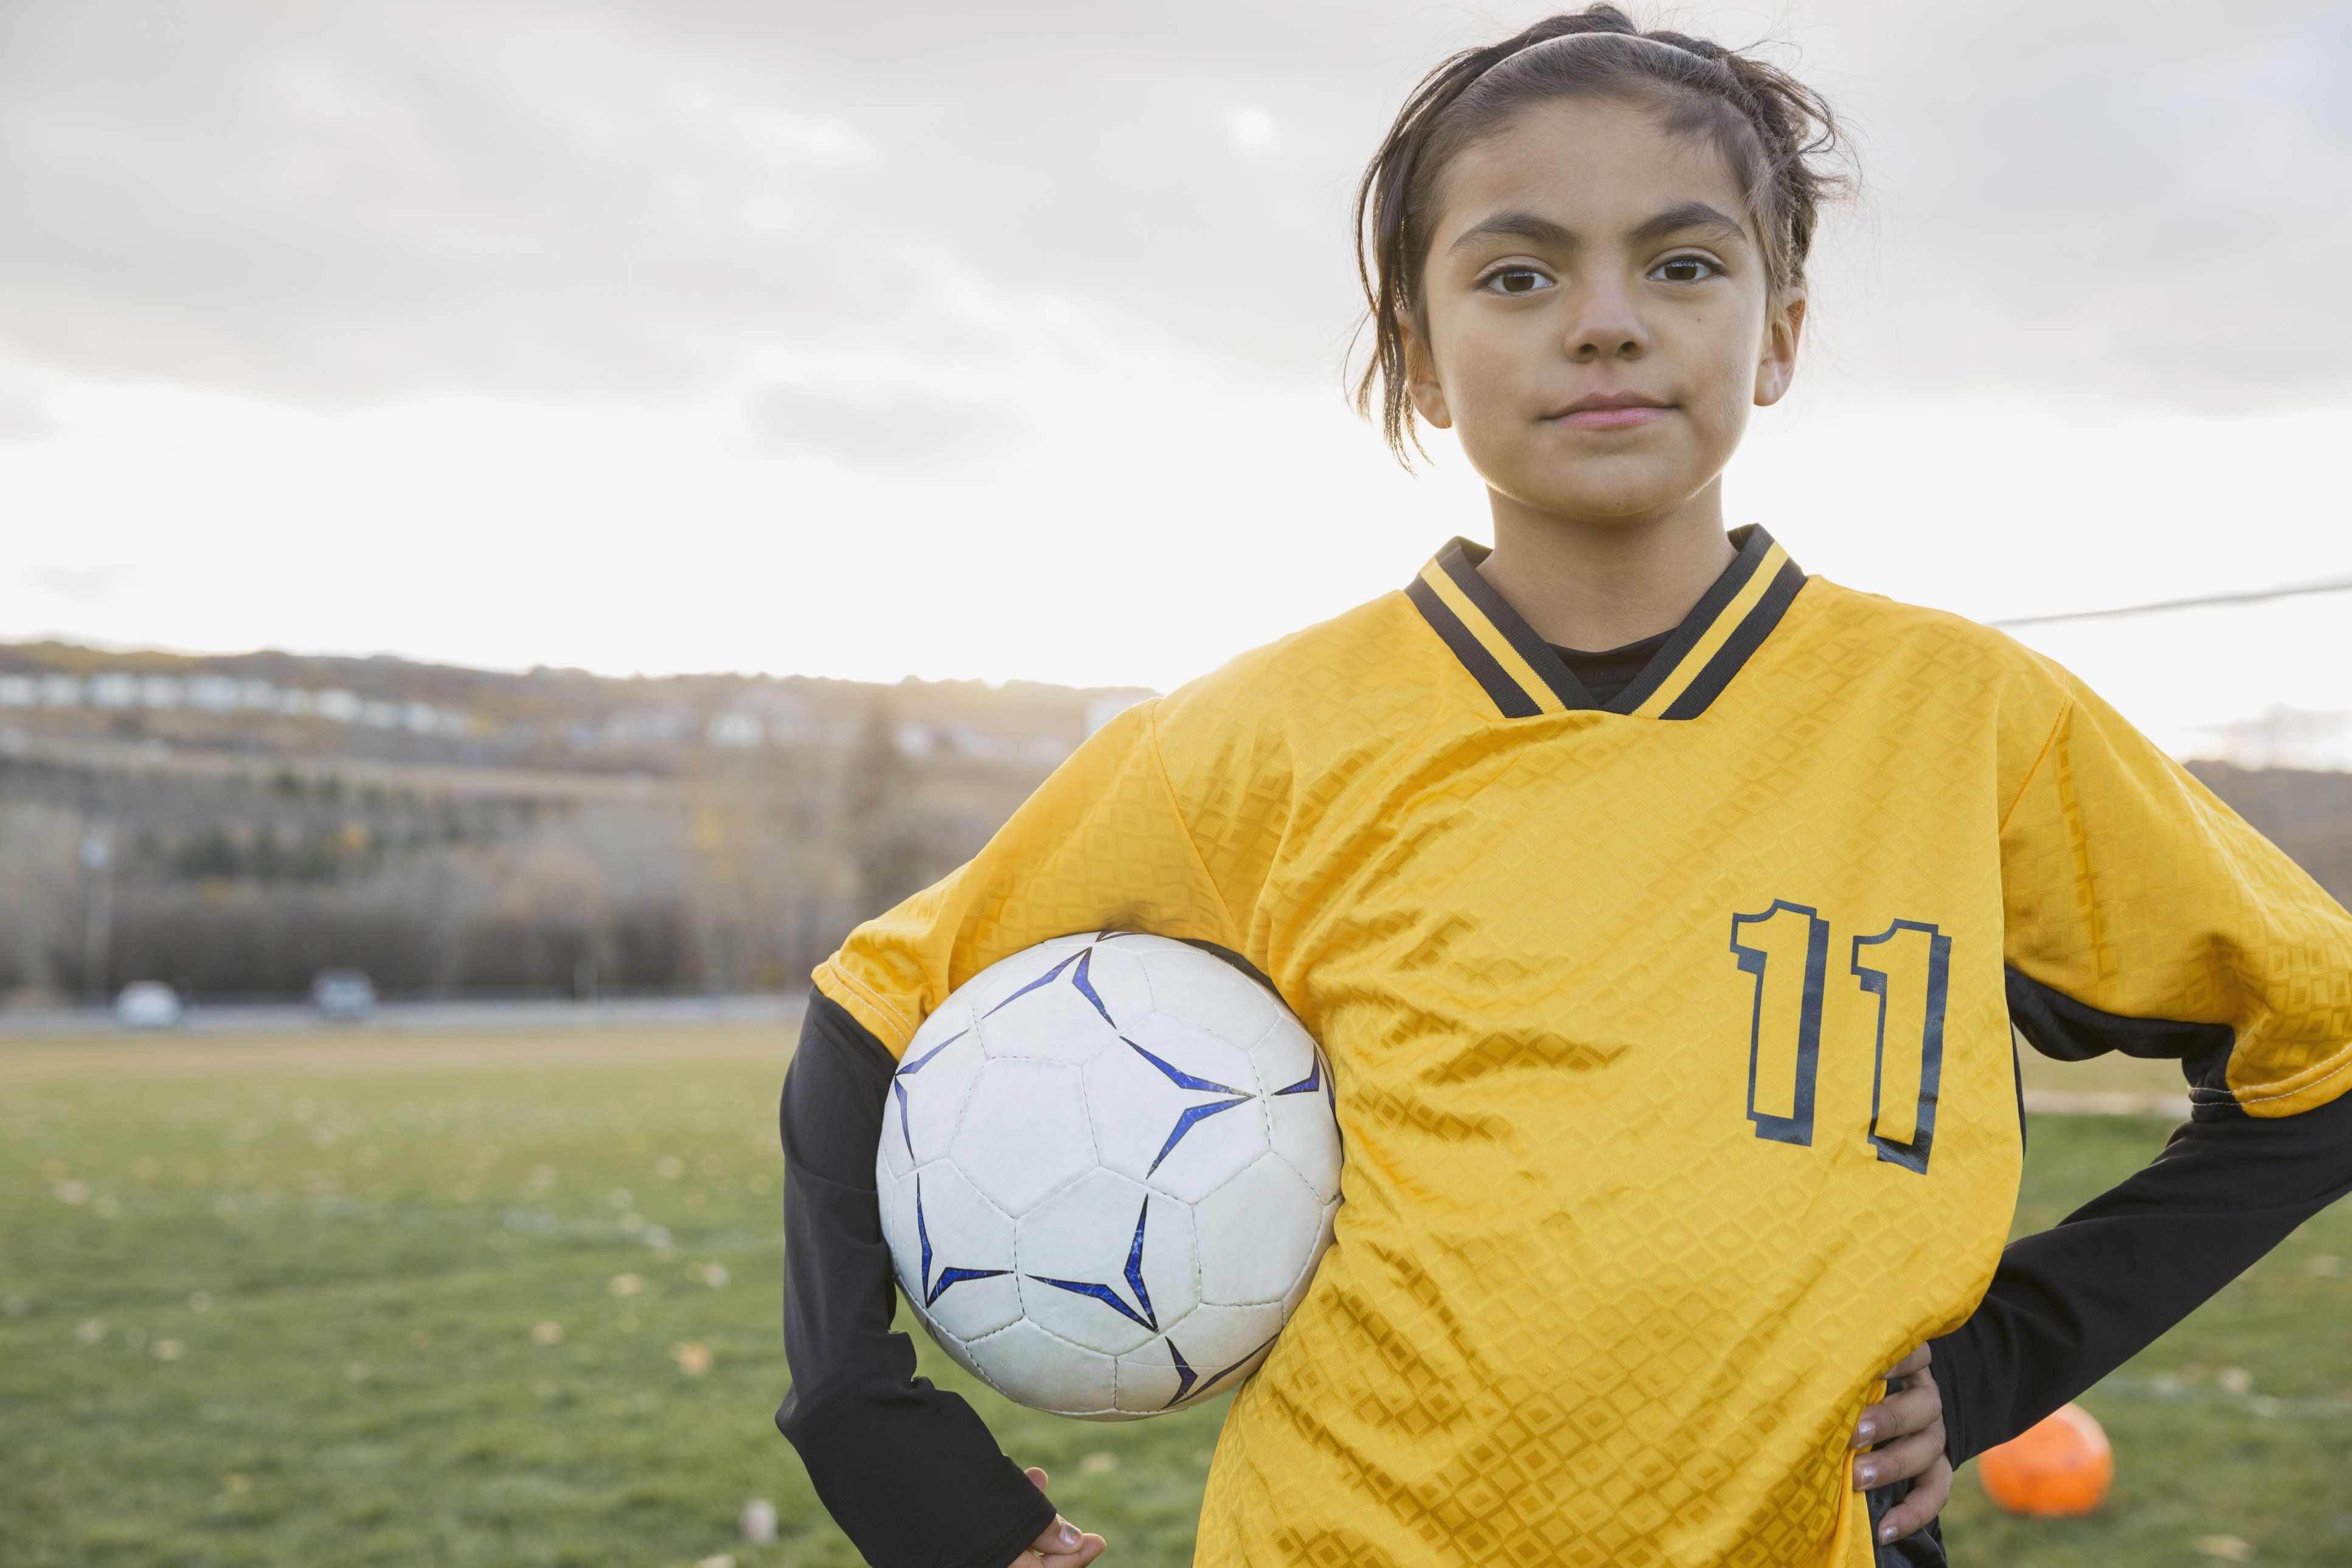 Girls Play Less Sport Than Boys: Here's How You Can Change